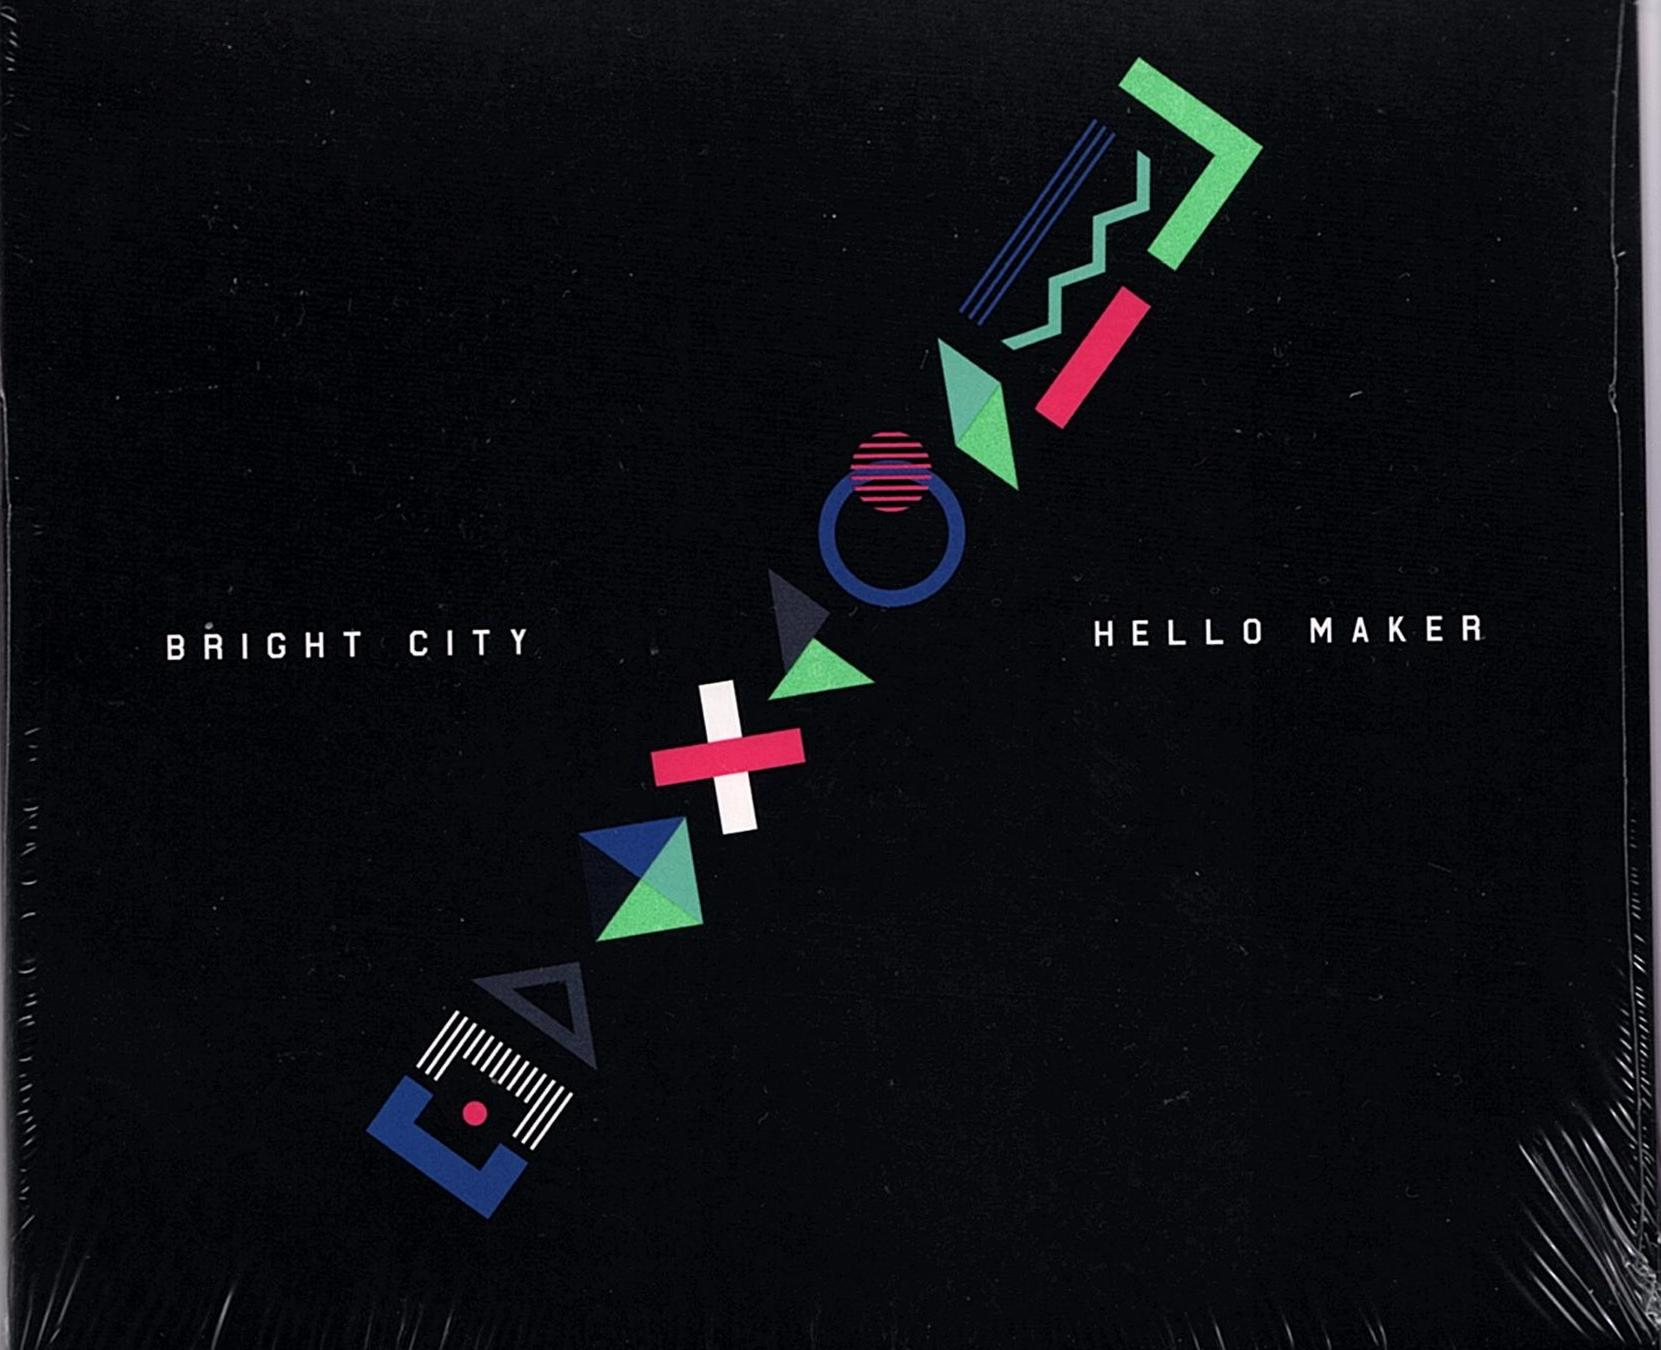 More information on Hello Maker Bright City